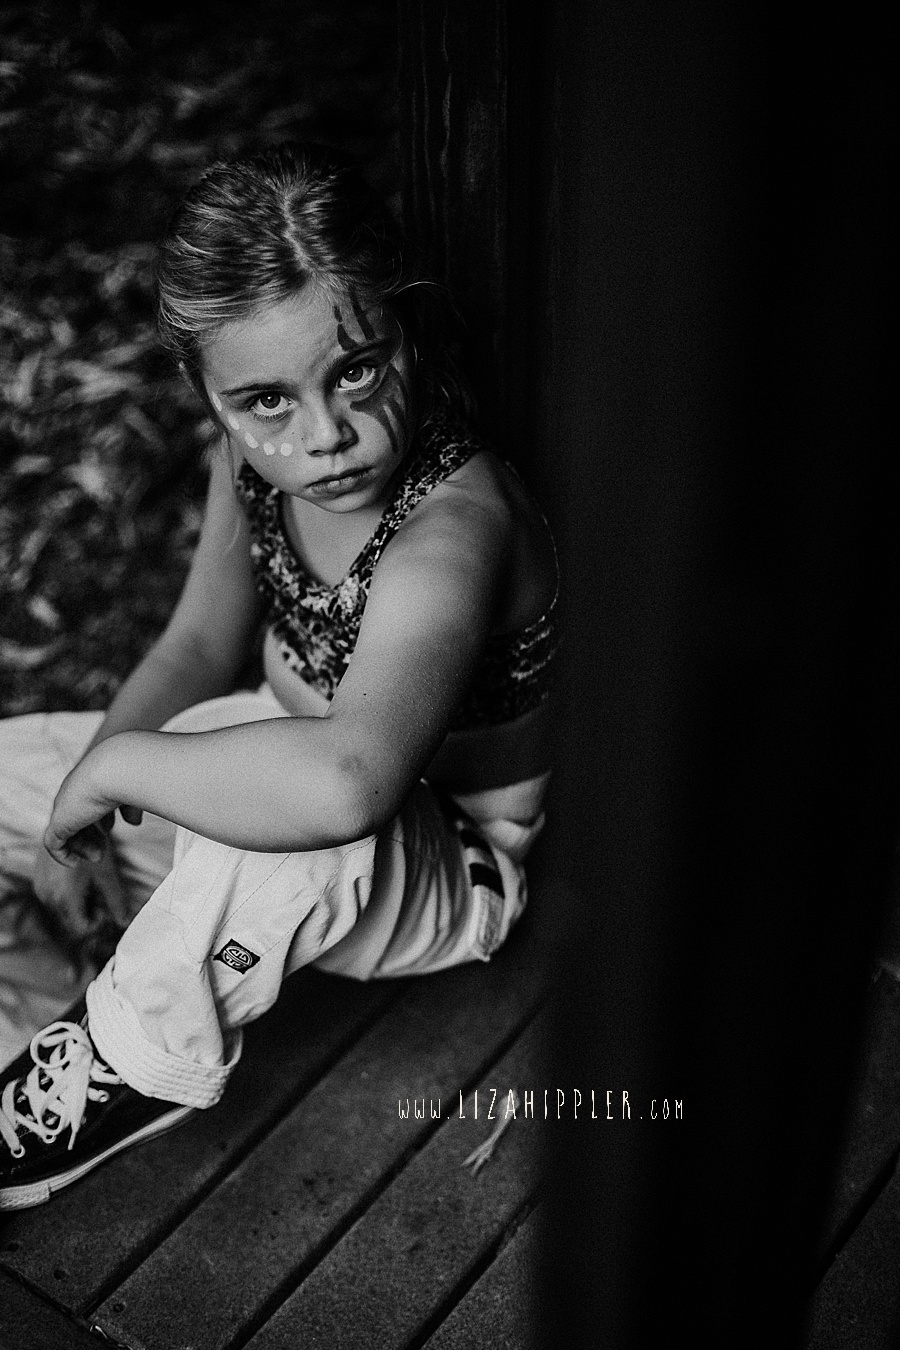 black and white photo of young girl with facepaint looking tough